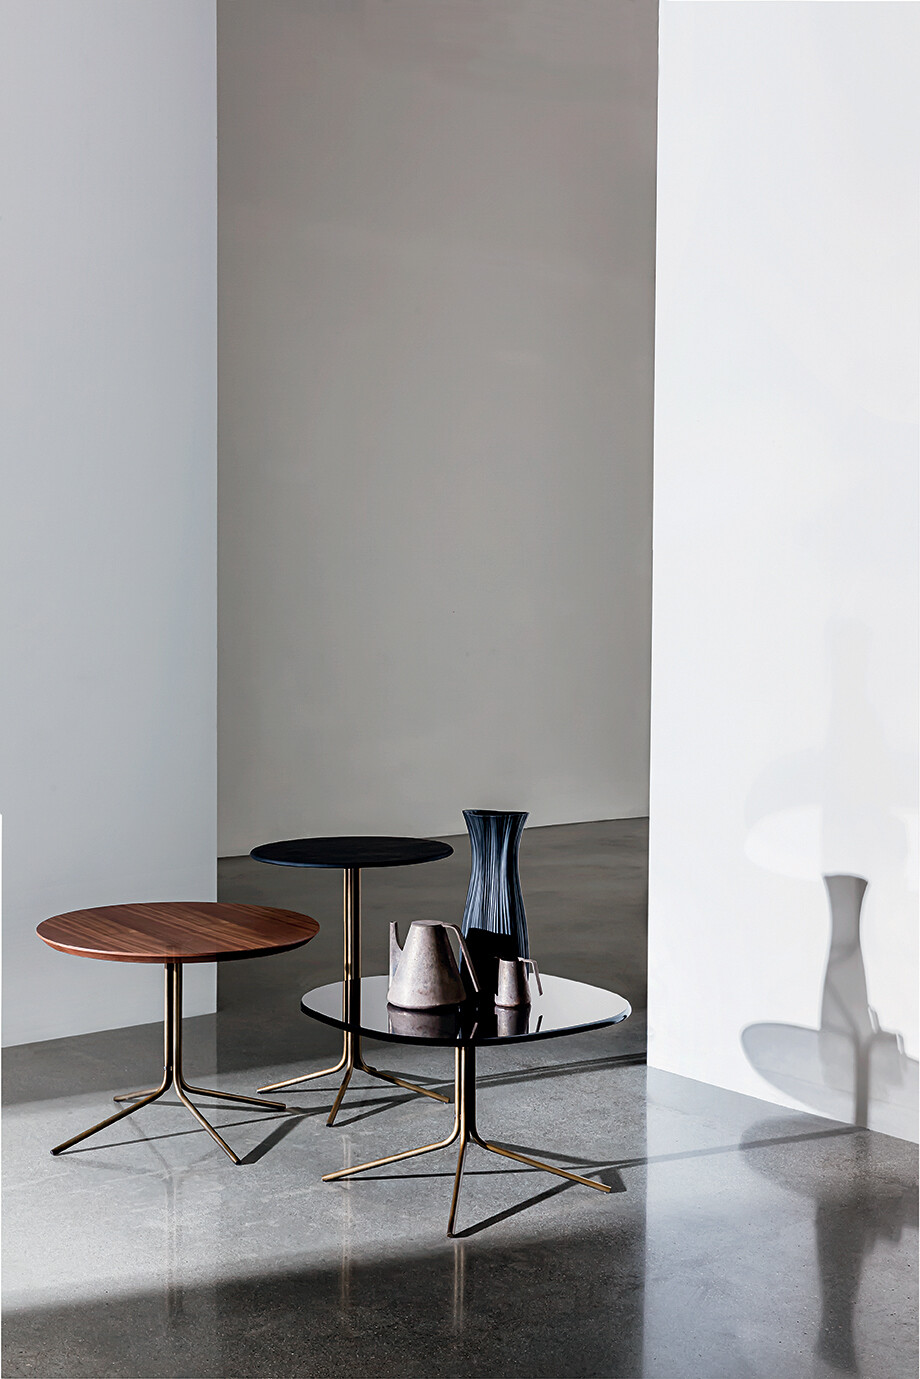 Genius with ceramic and glass top